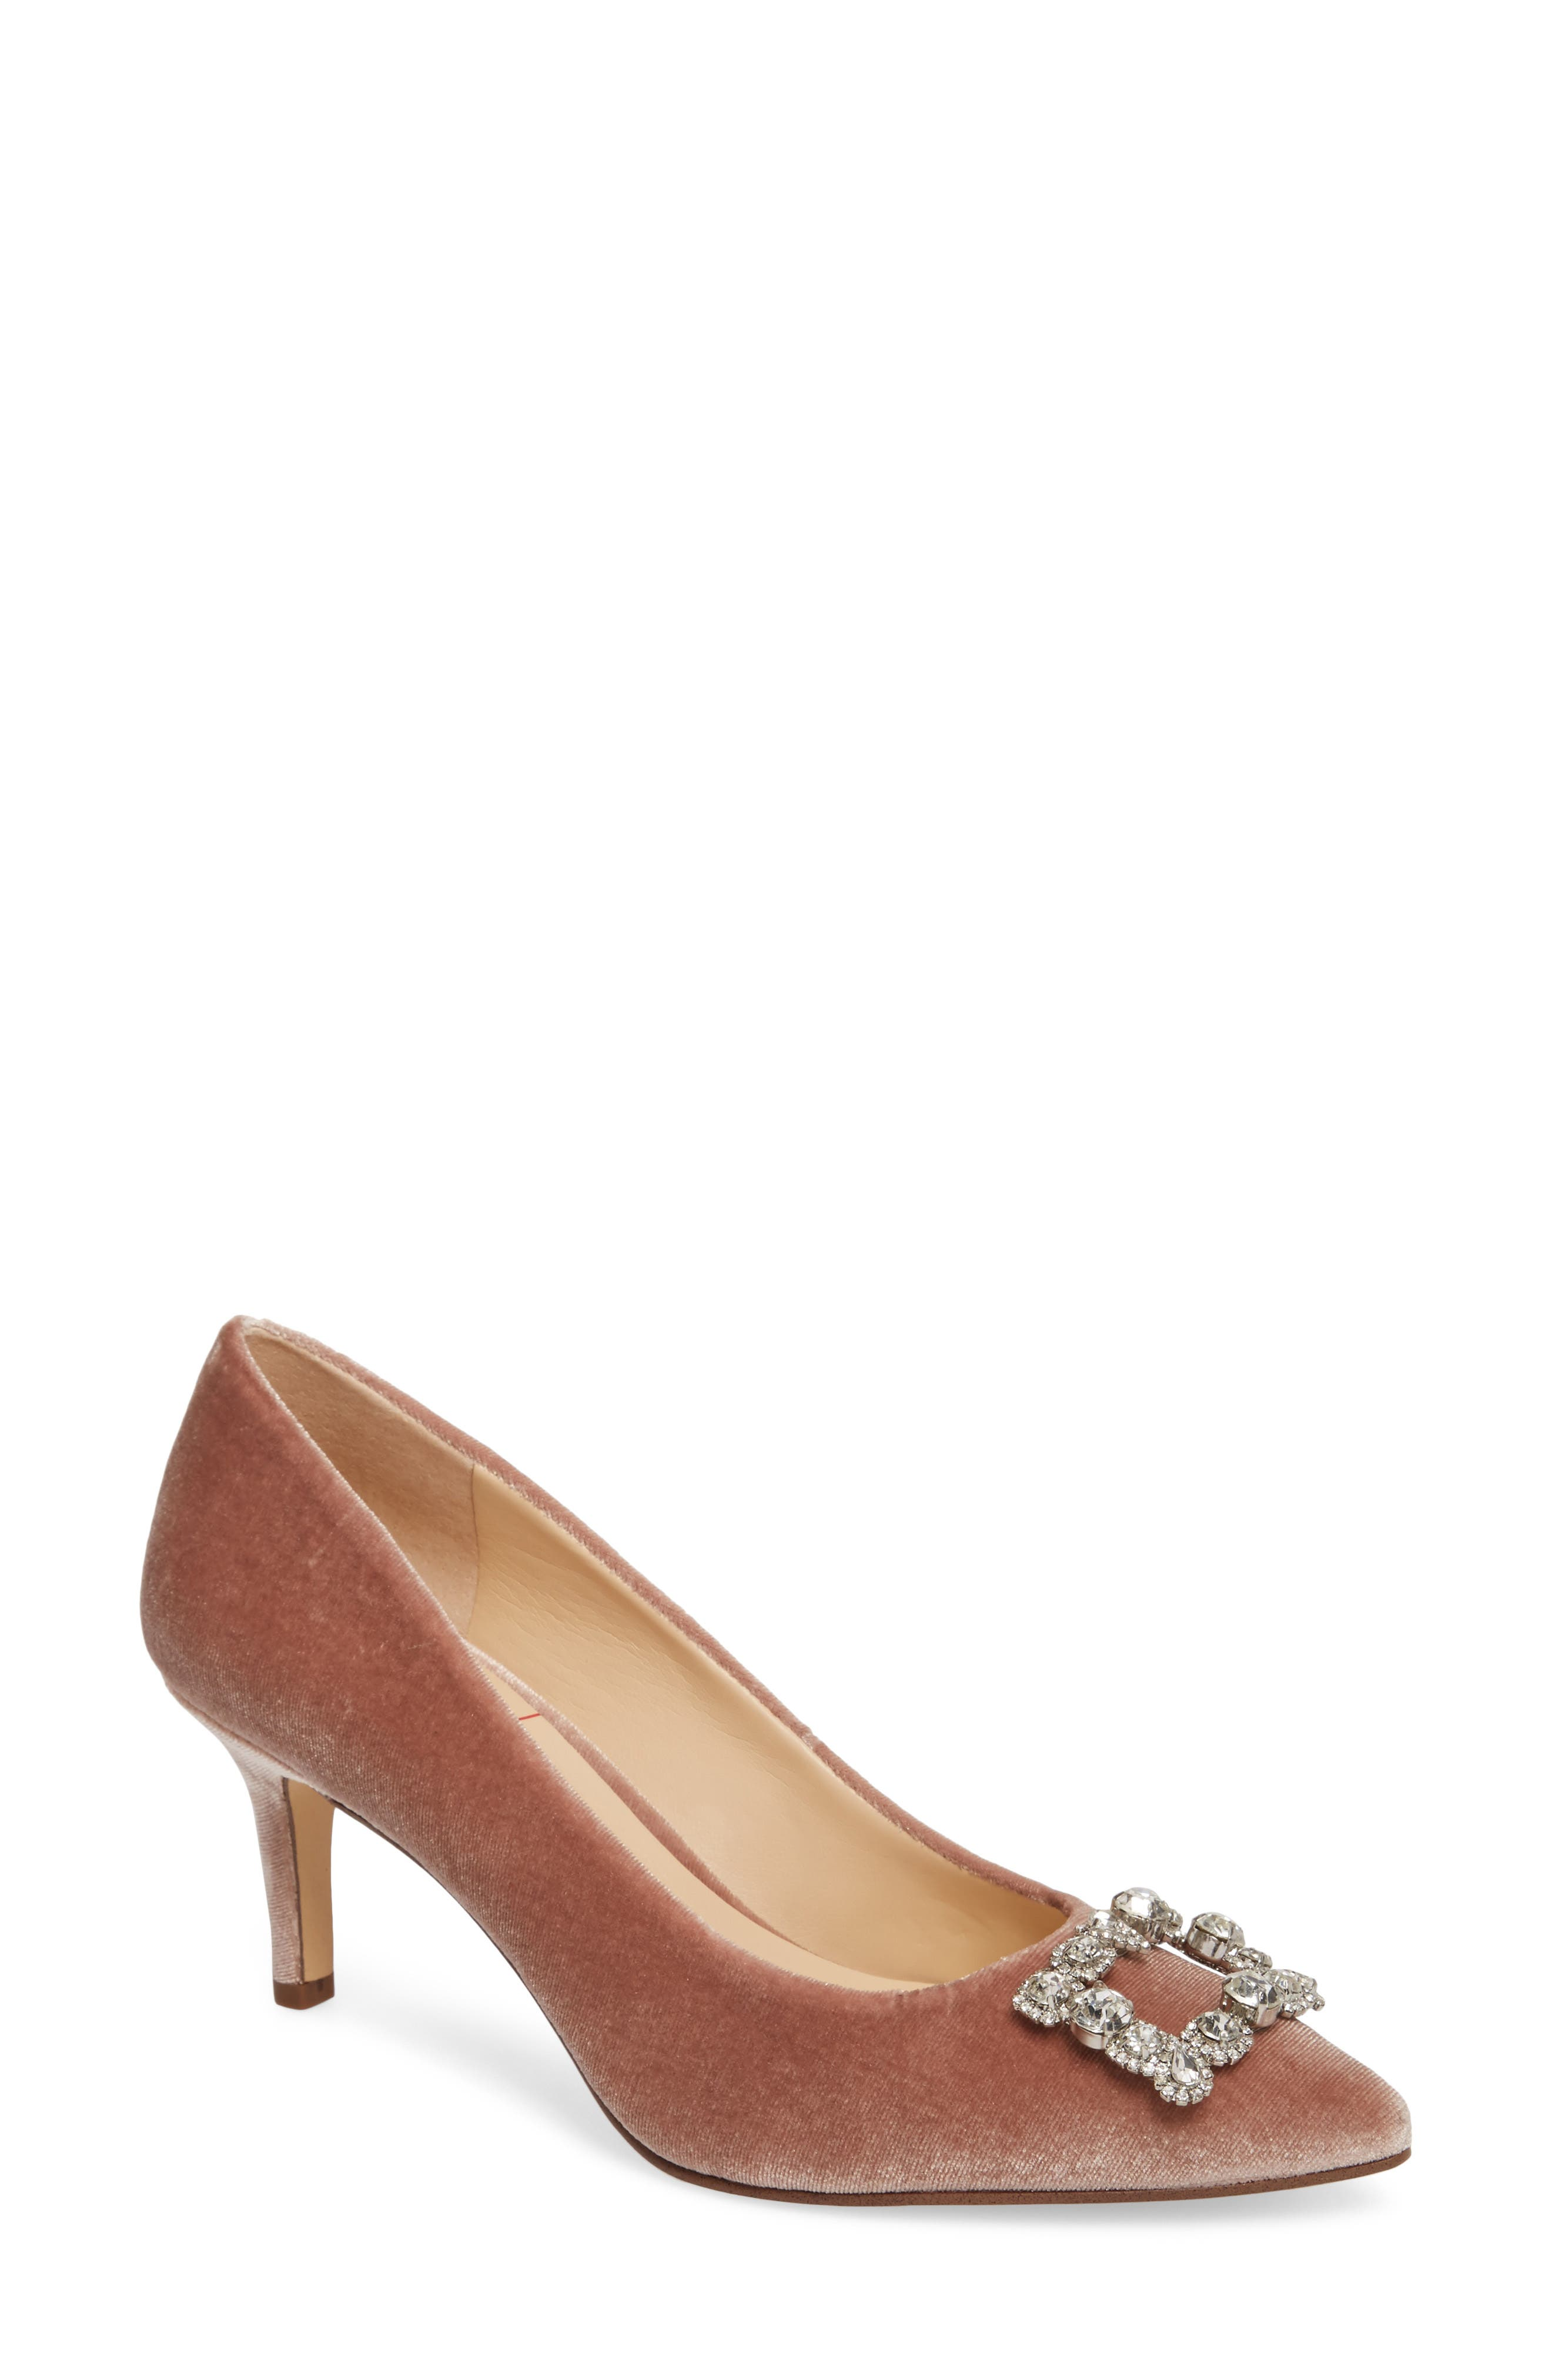 Edilina Crystal Buckle Velvet Pump,                         Main,                         color, Mahogany Rose